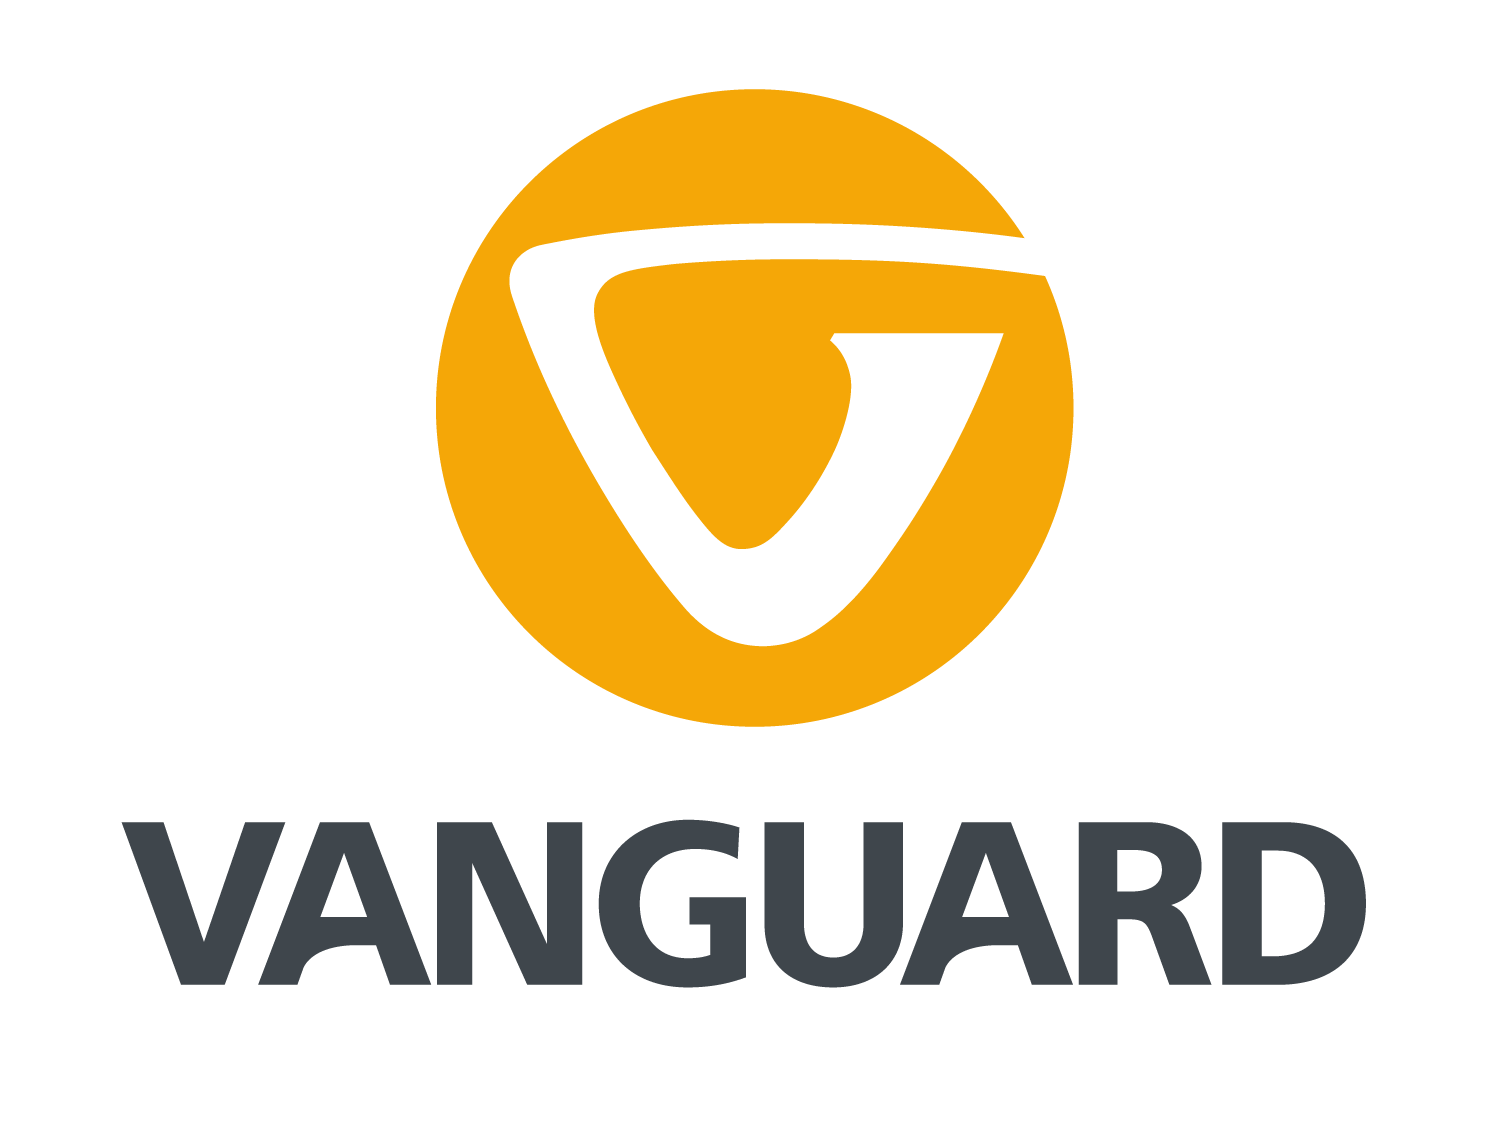 Vanguard_Logo_Stacked_Primary.png